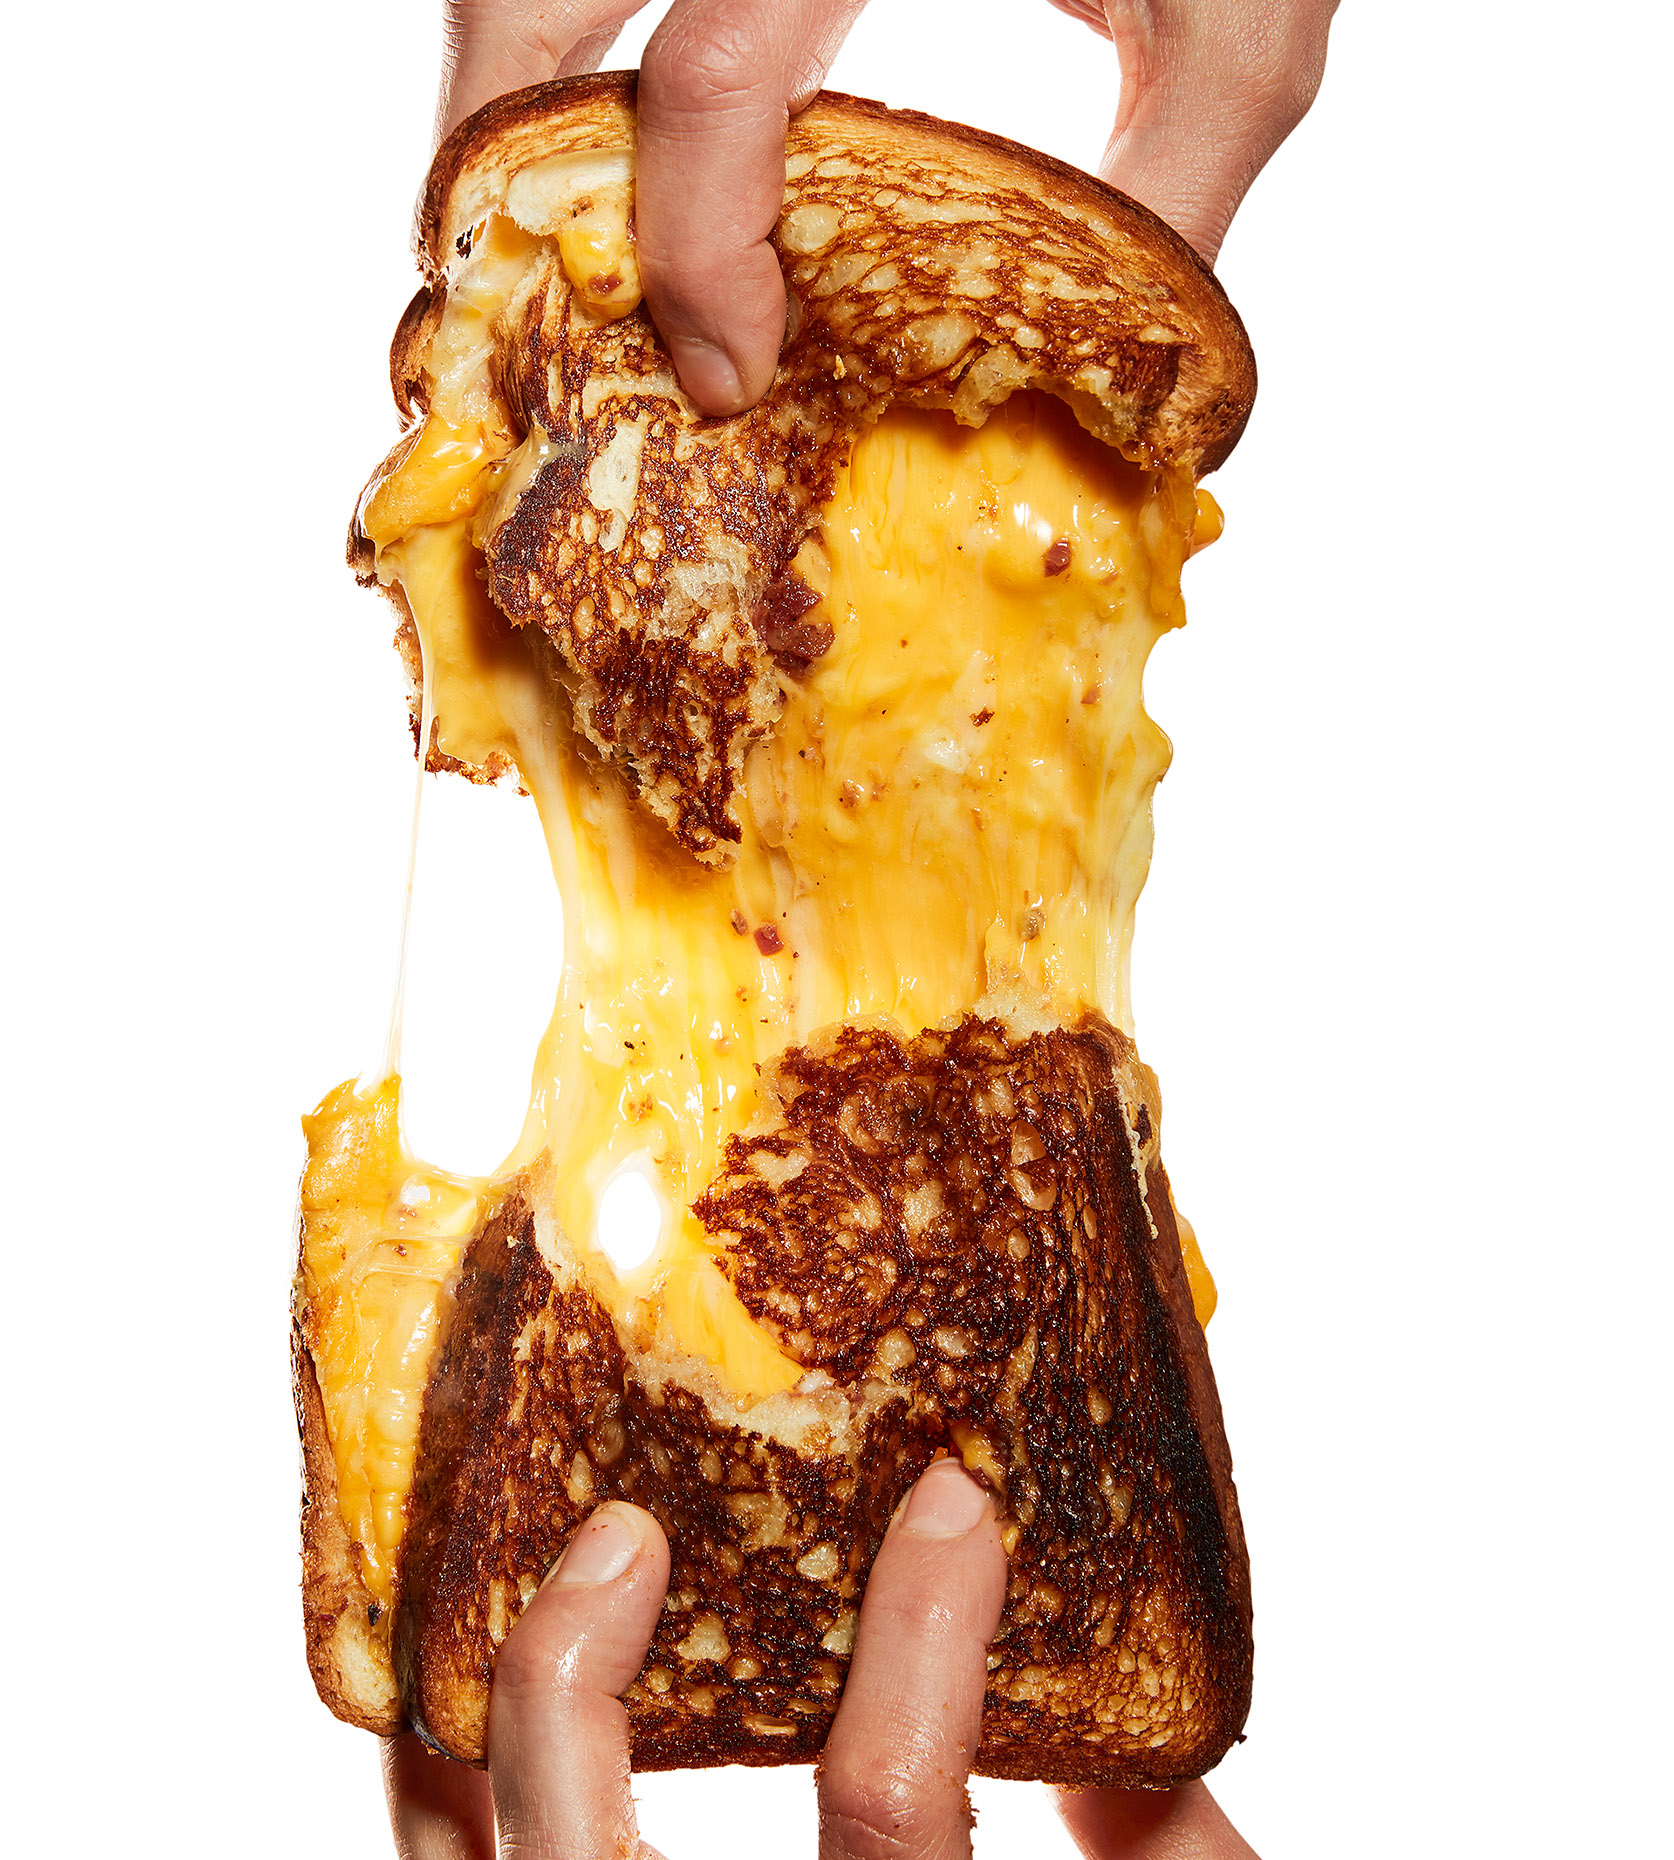 Oozy_Golden_Grilled_Cheese_With_Pastrami_Bacon_Jam_0220_Hero